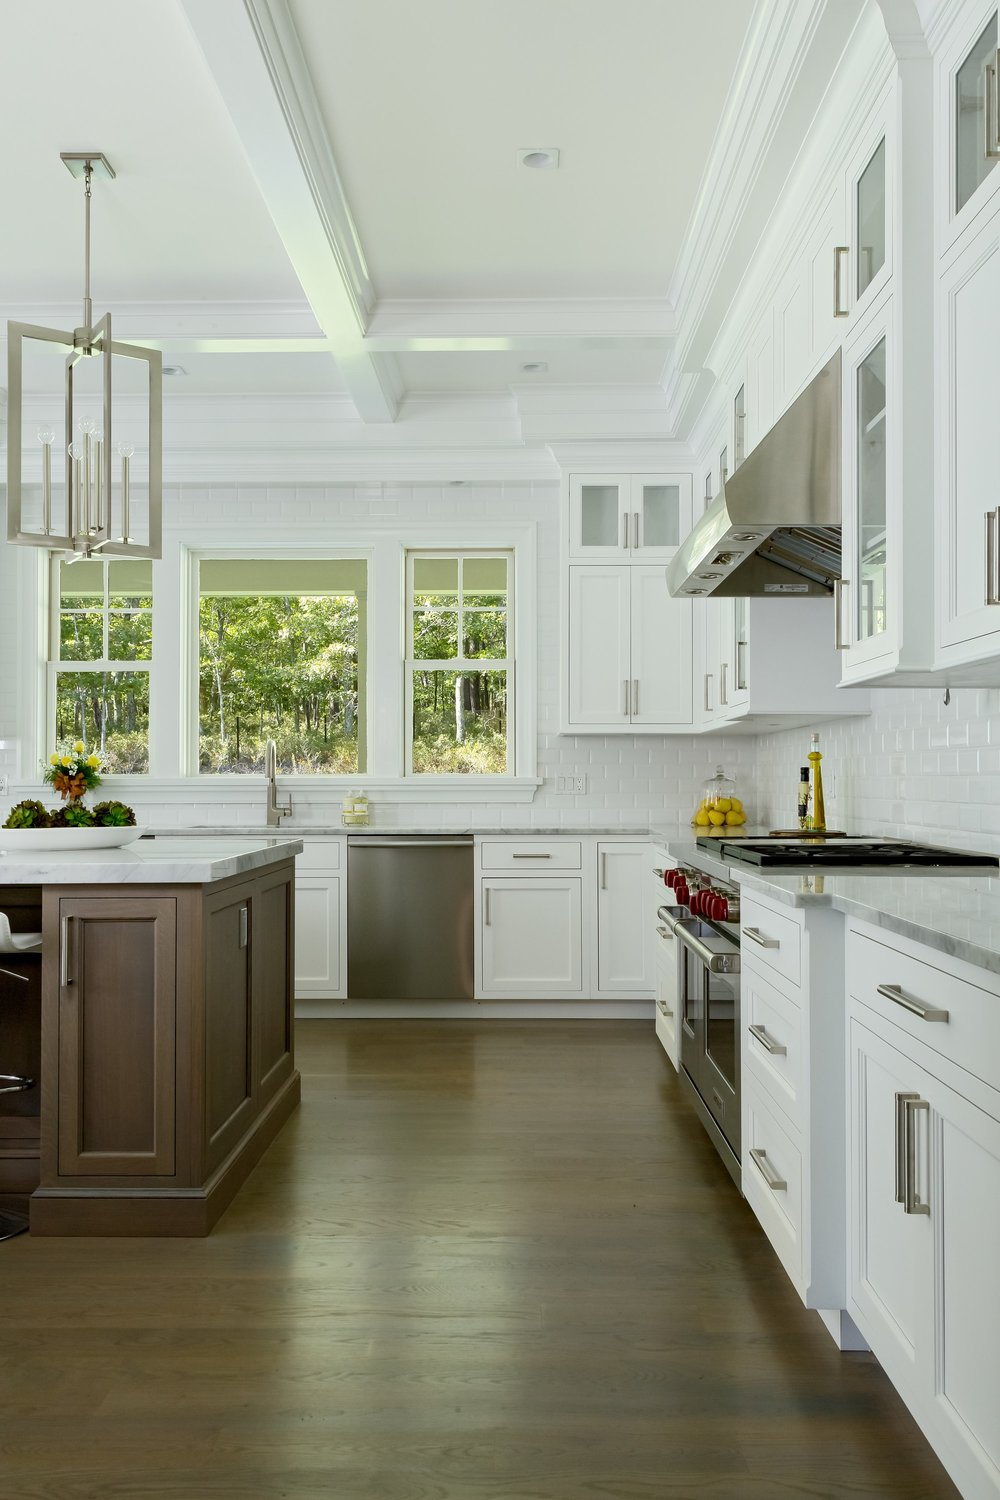 Transitional Style Kitchen With Bay Windows